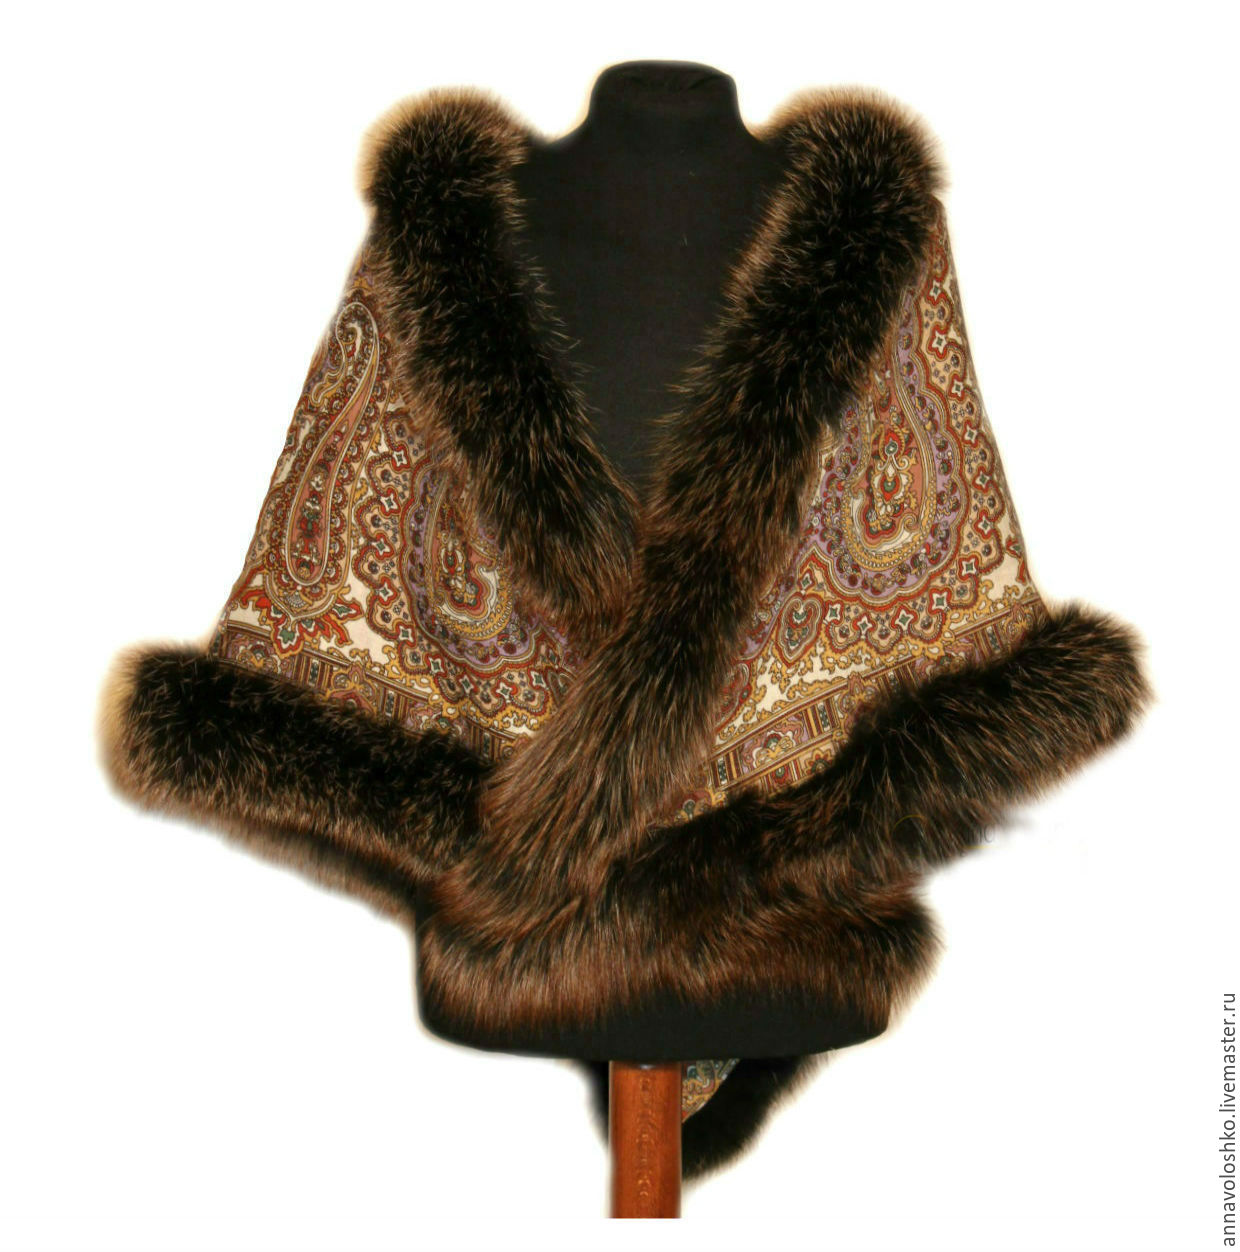 Pavlovo Posad shawl with fur. Fox, Fox, Fox, marten, mink.